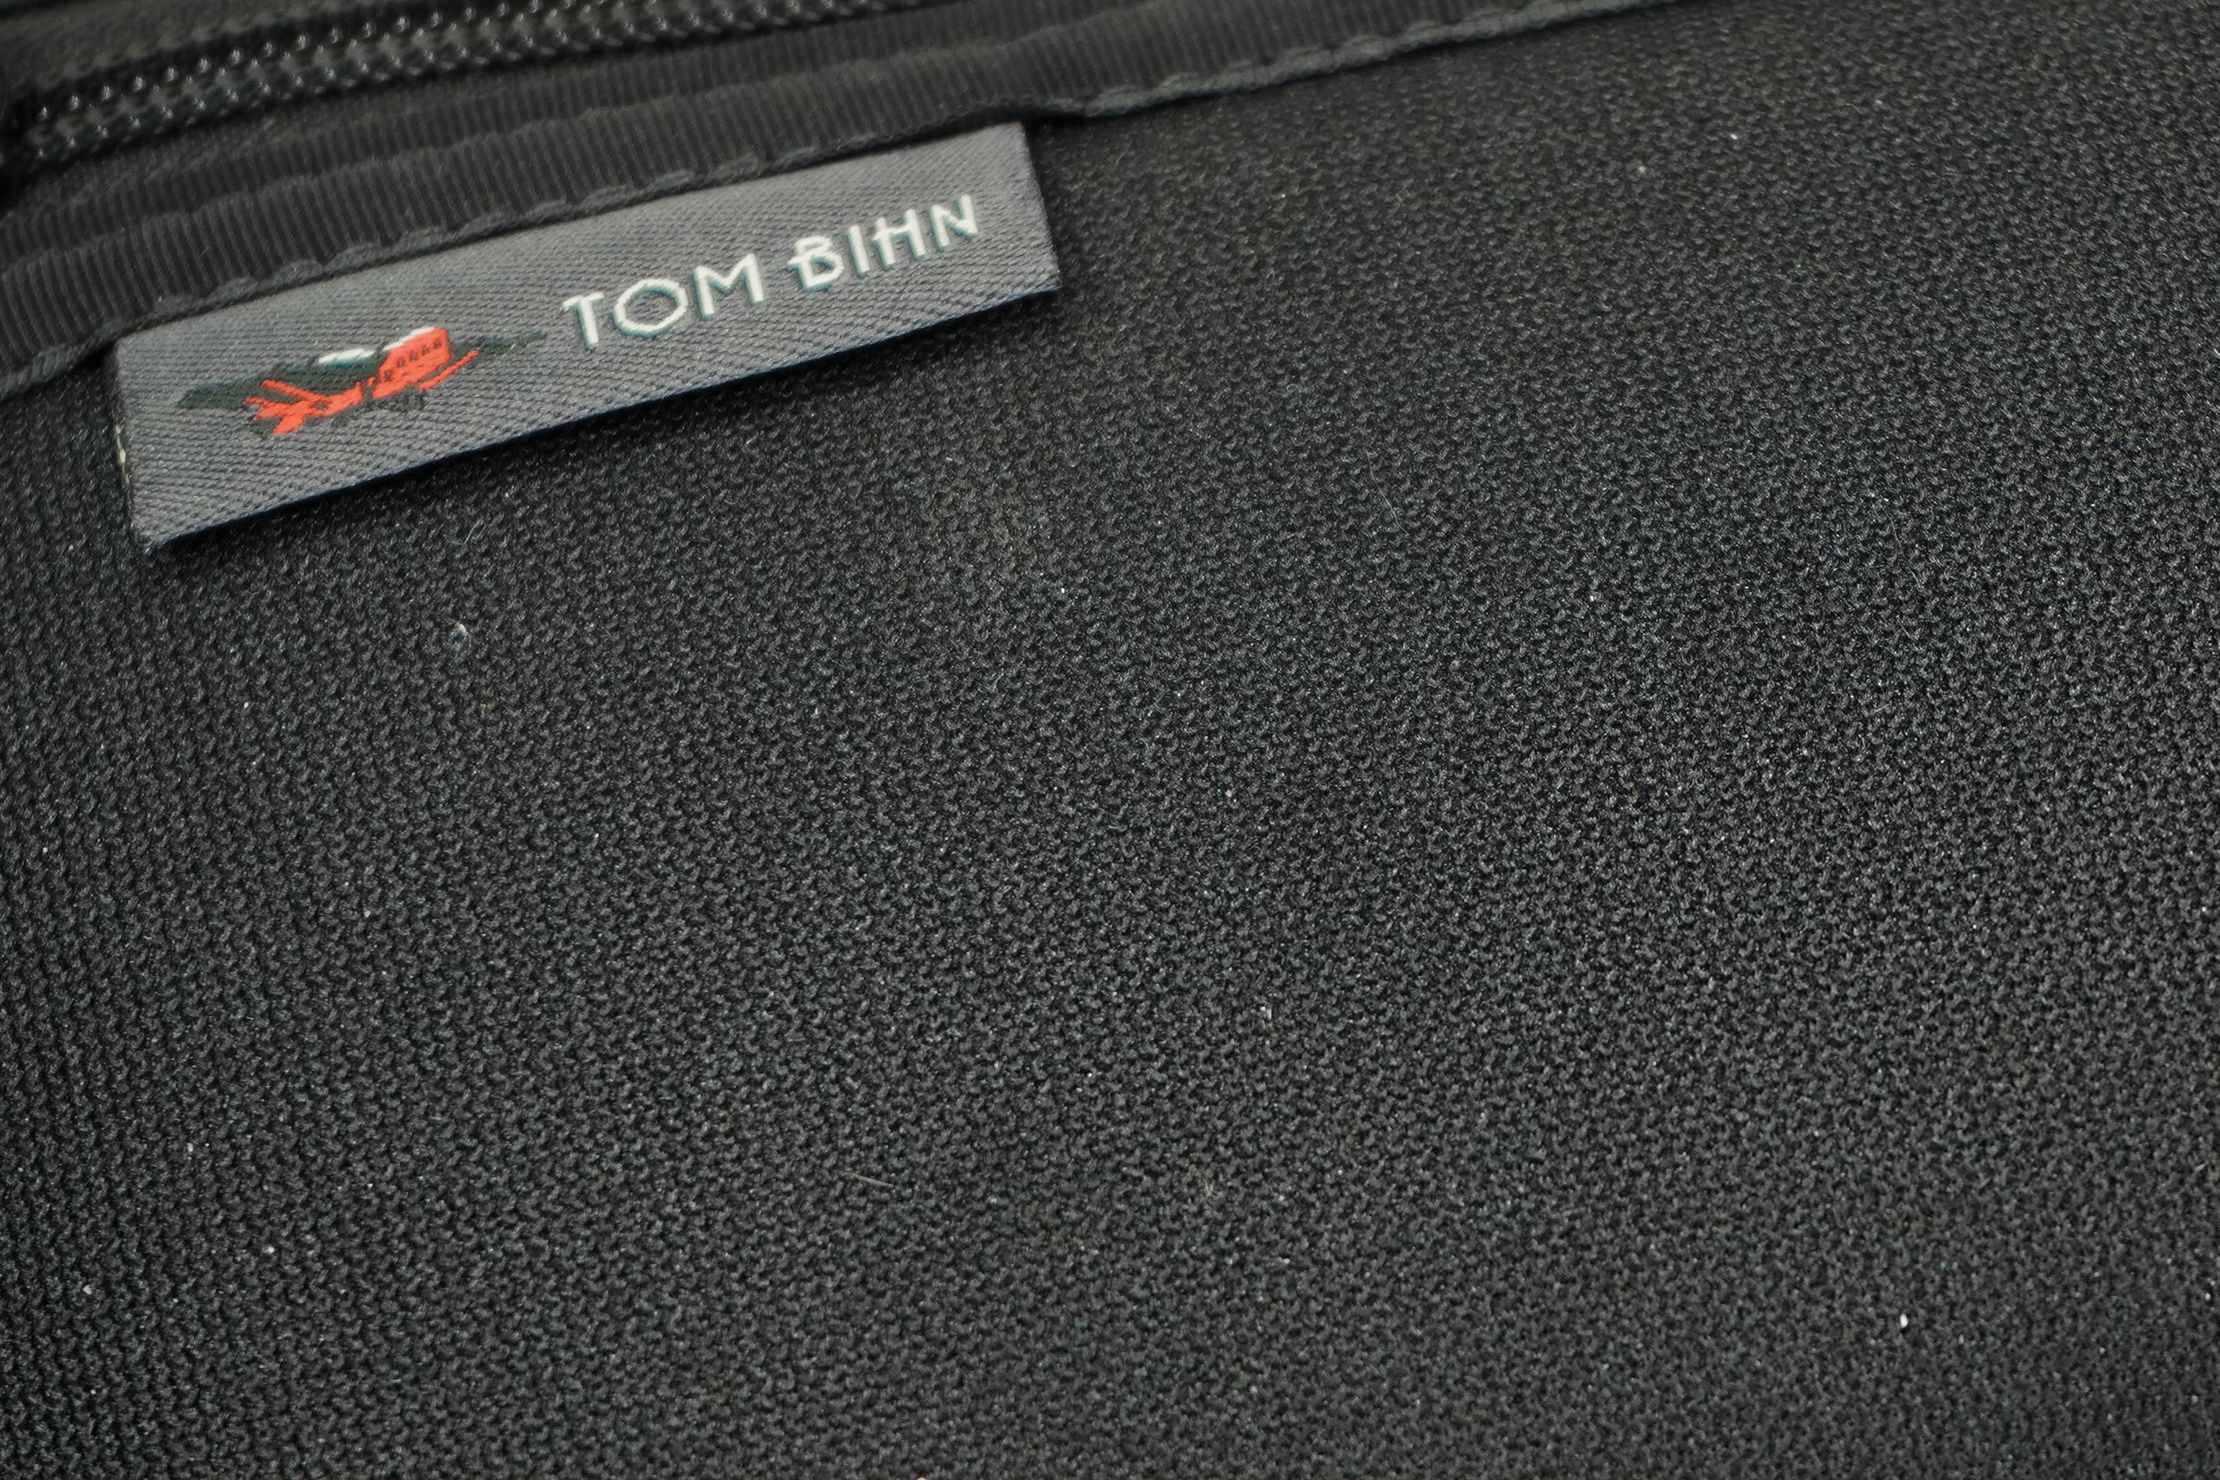 Tom Bihn Padded Organizer Pouch Materials